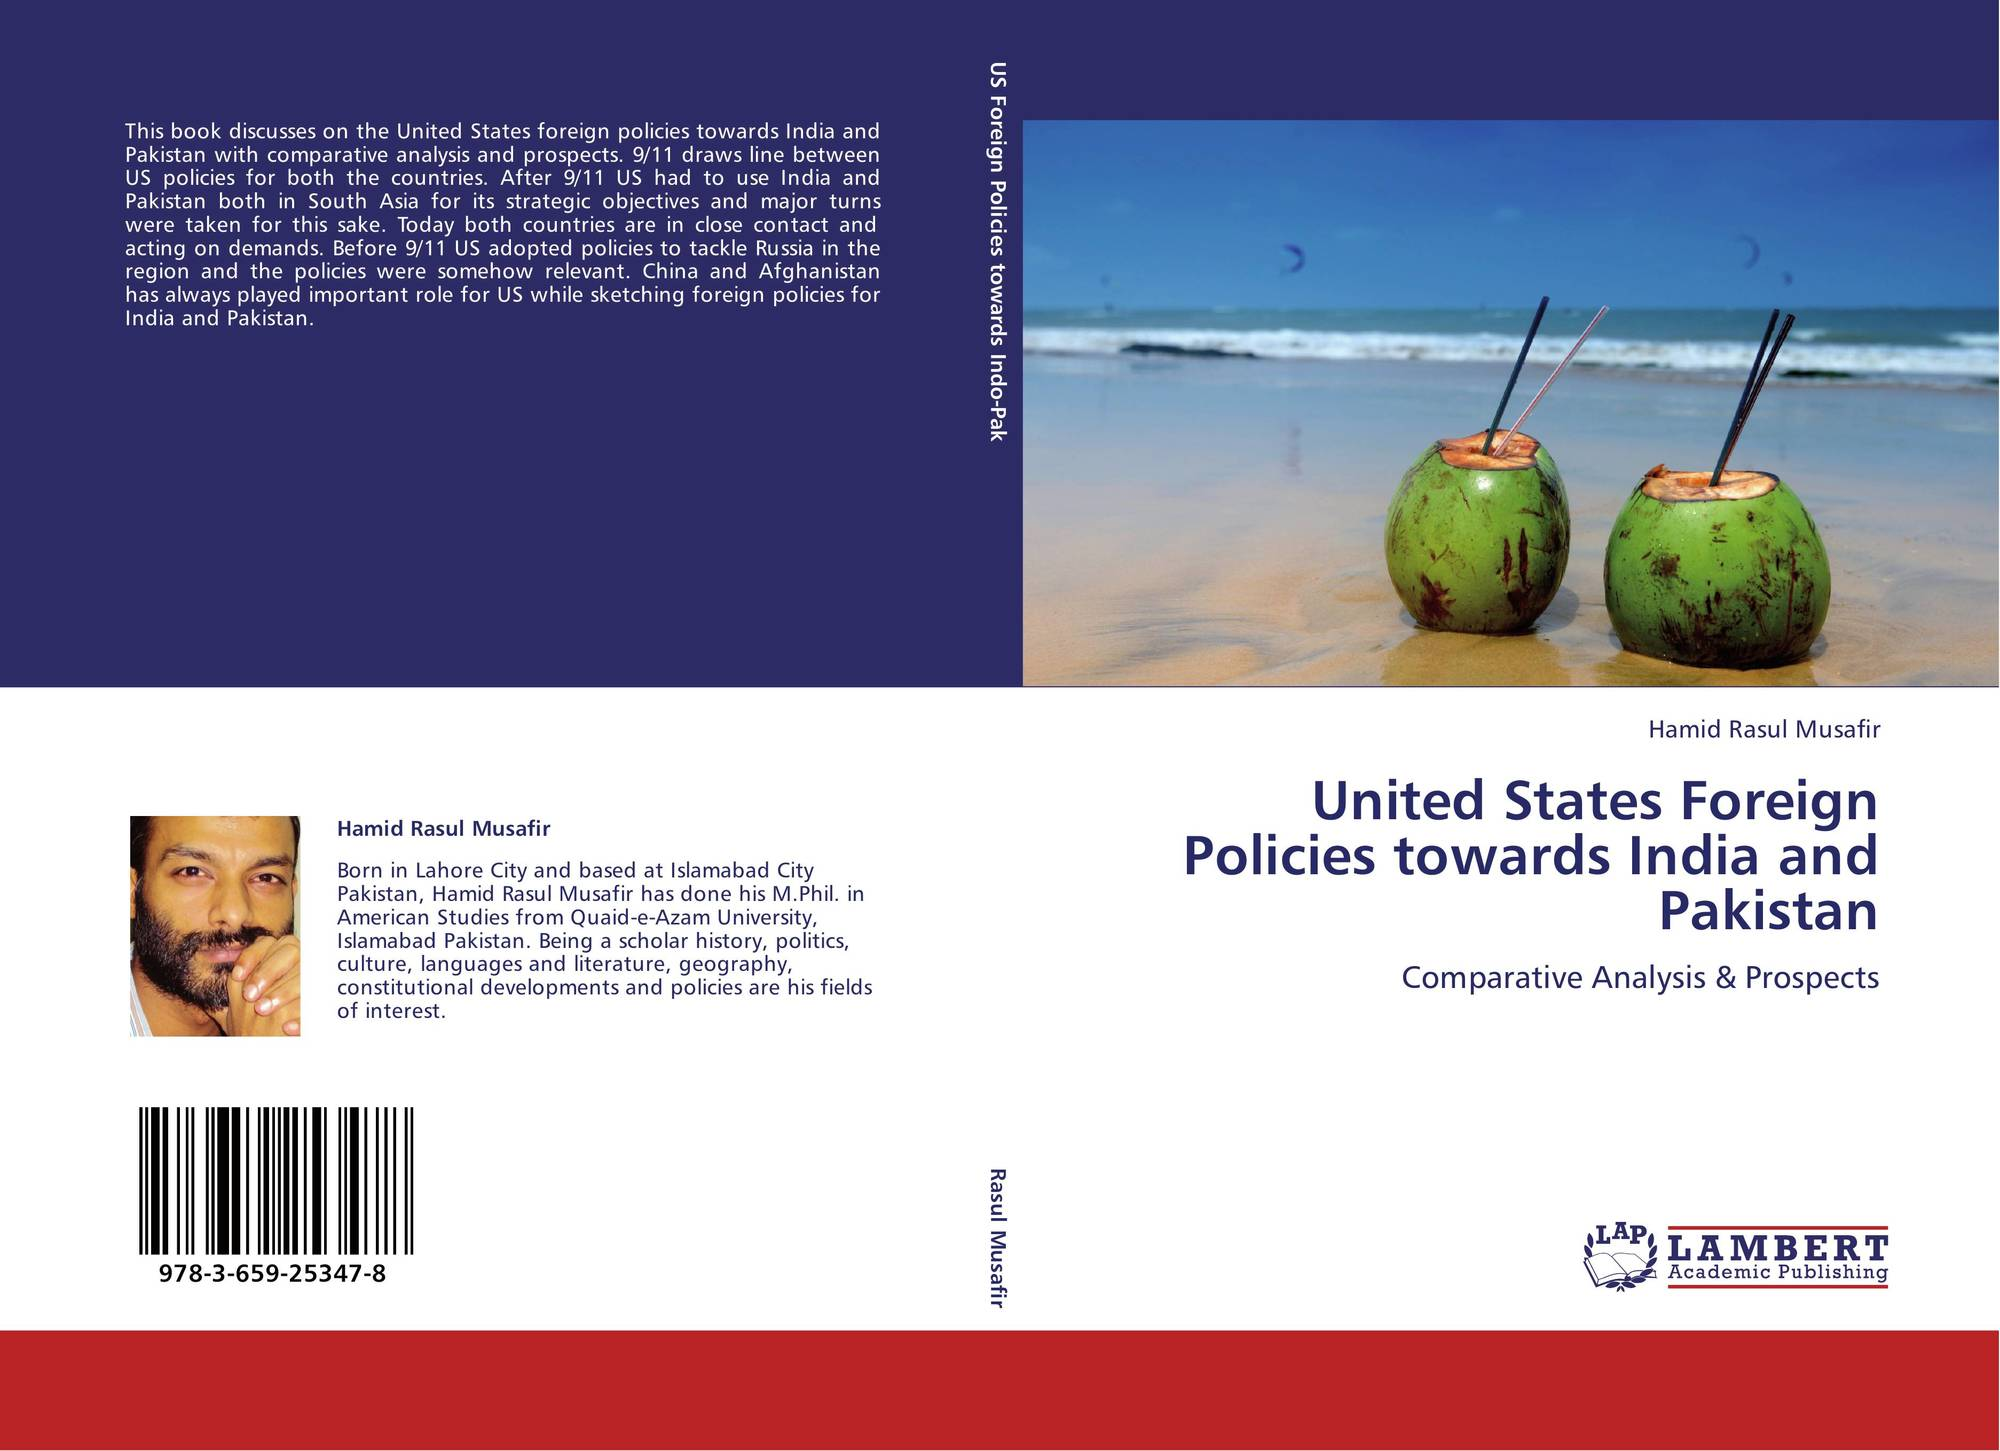 an analysis of the united states foreign policy towards asian countries